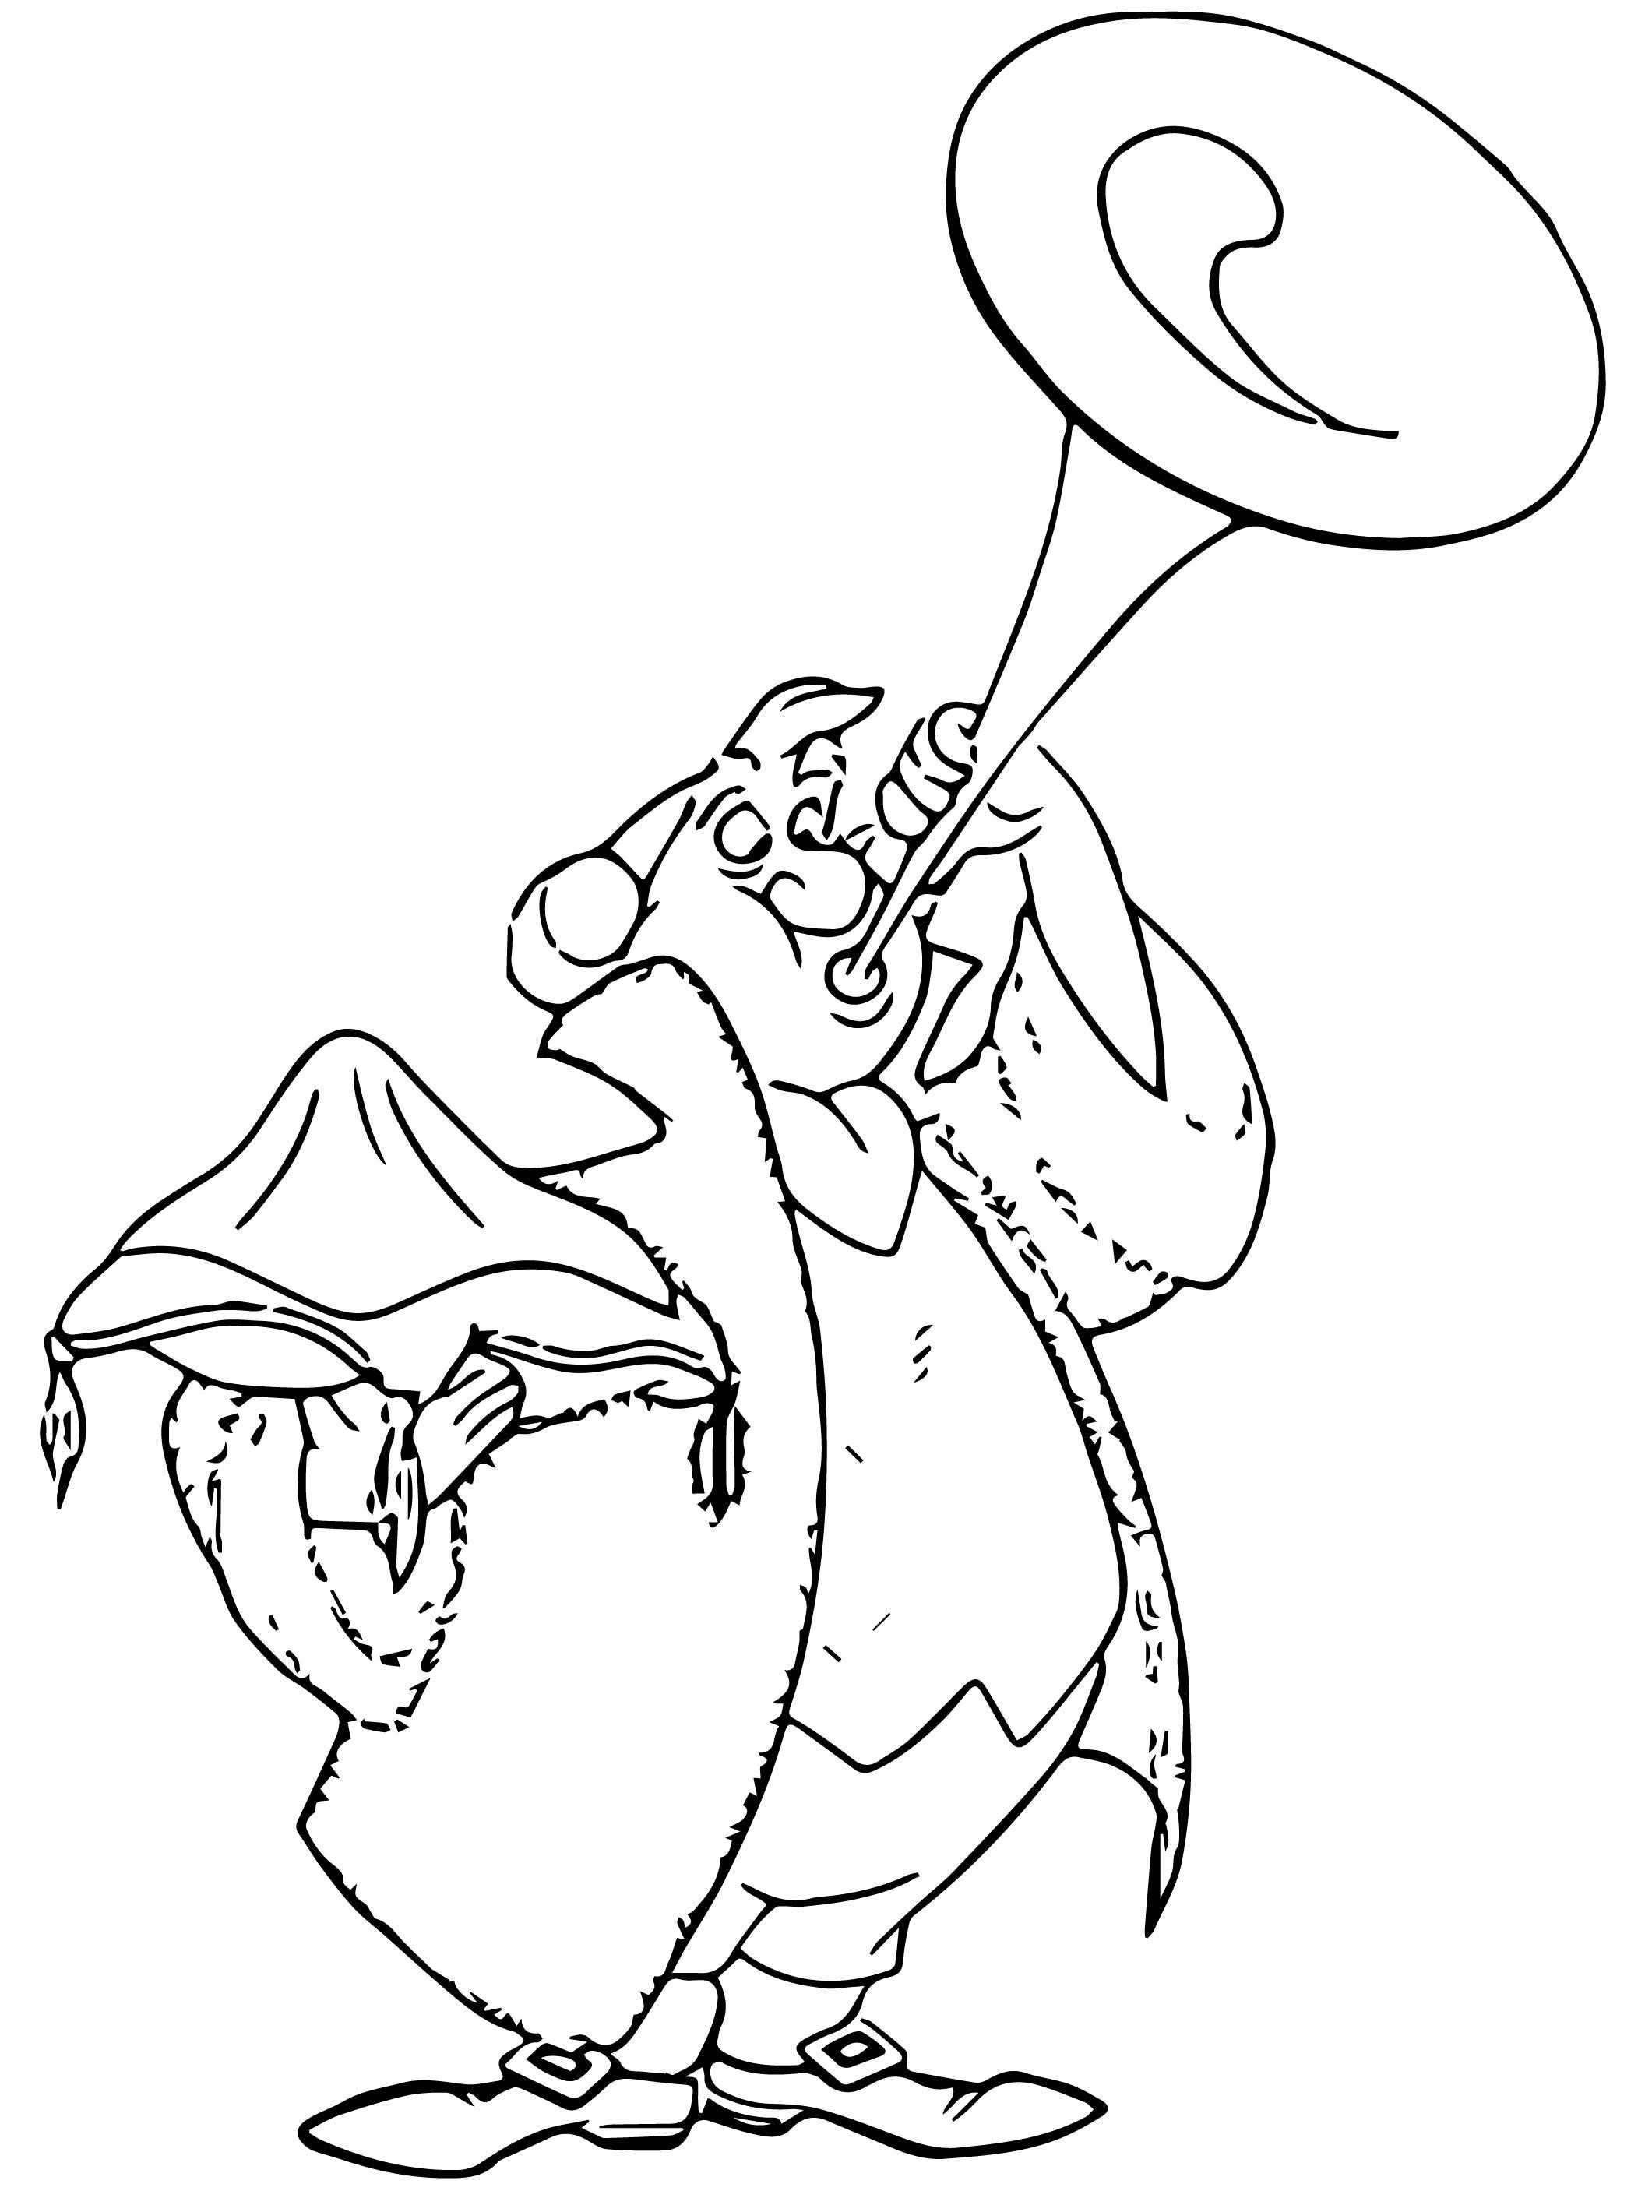 Herald Coloring Page